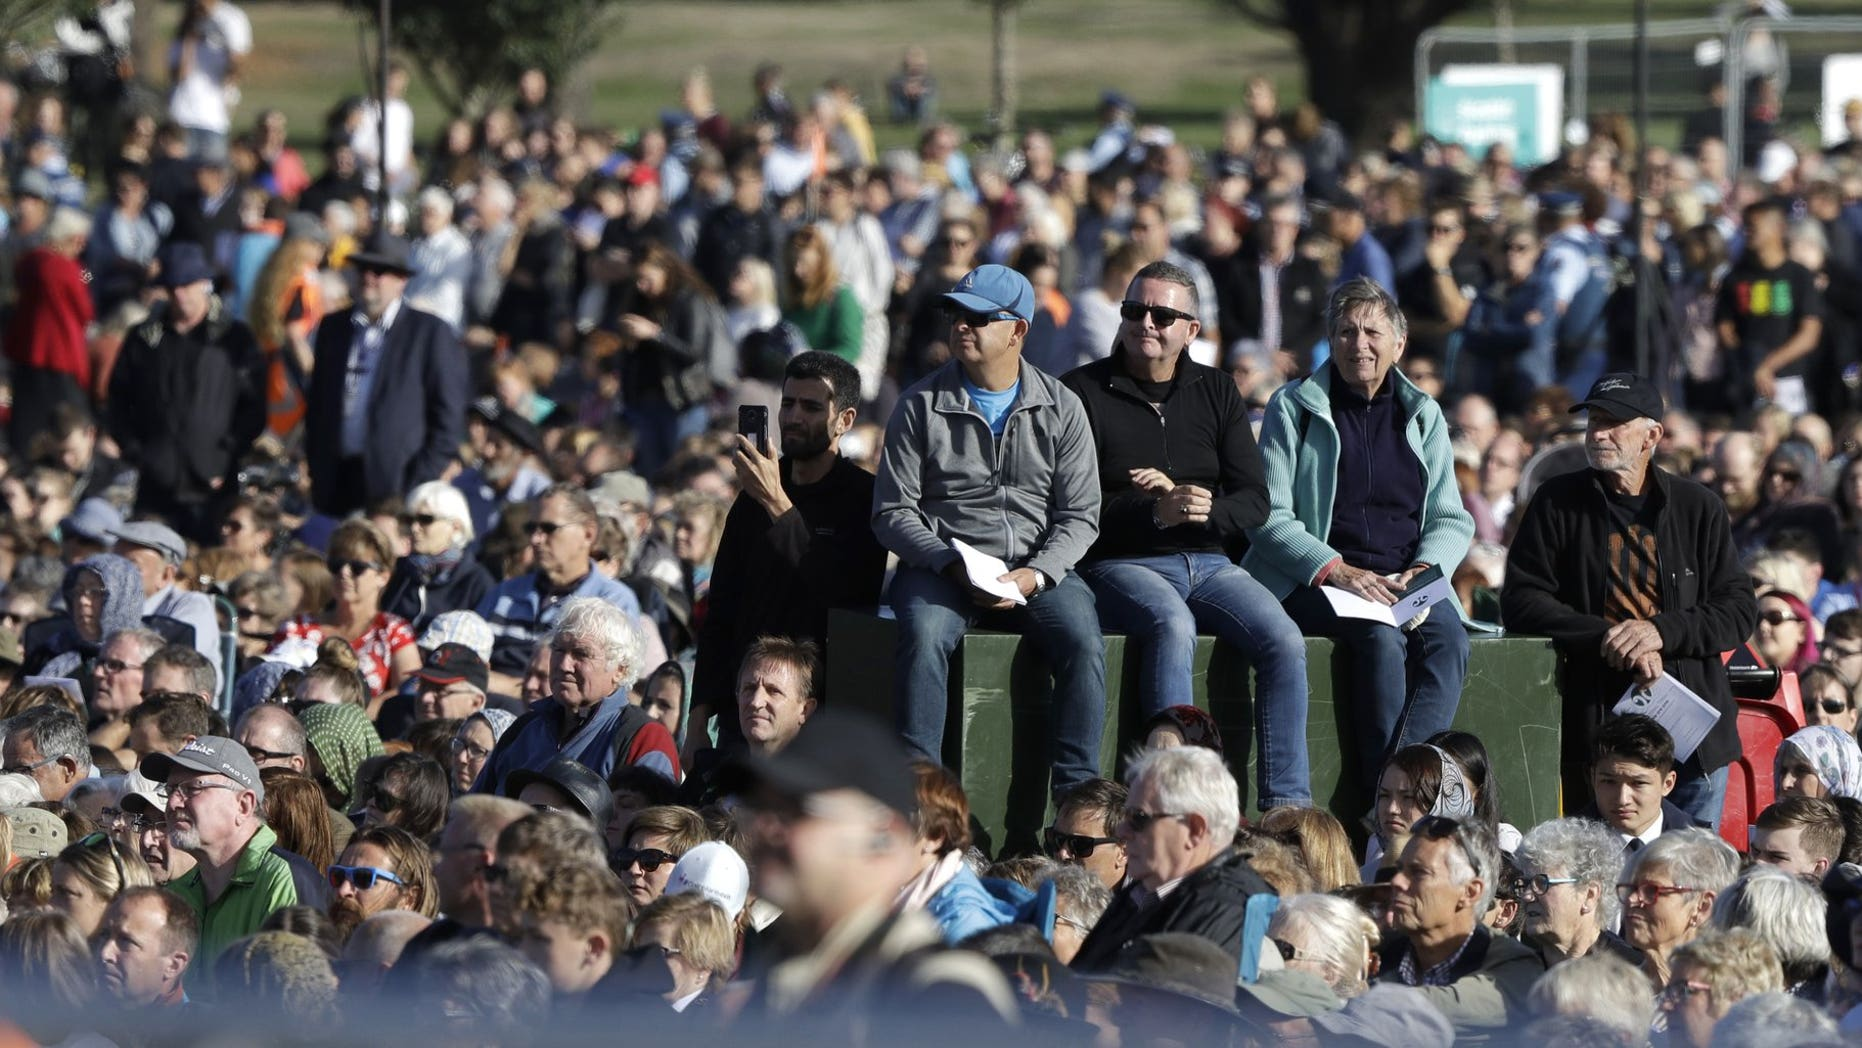 People listen during a National Remembrance Service in Hagley Park for the victims of the March 15 mosques terrorist attack in Christchurch, New Zealand, Friday, March 29, 2019.